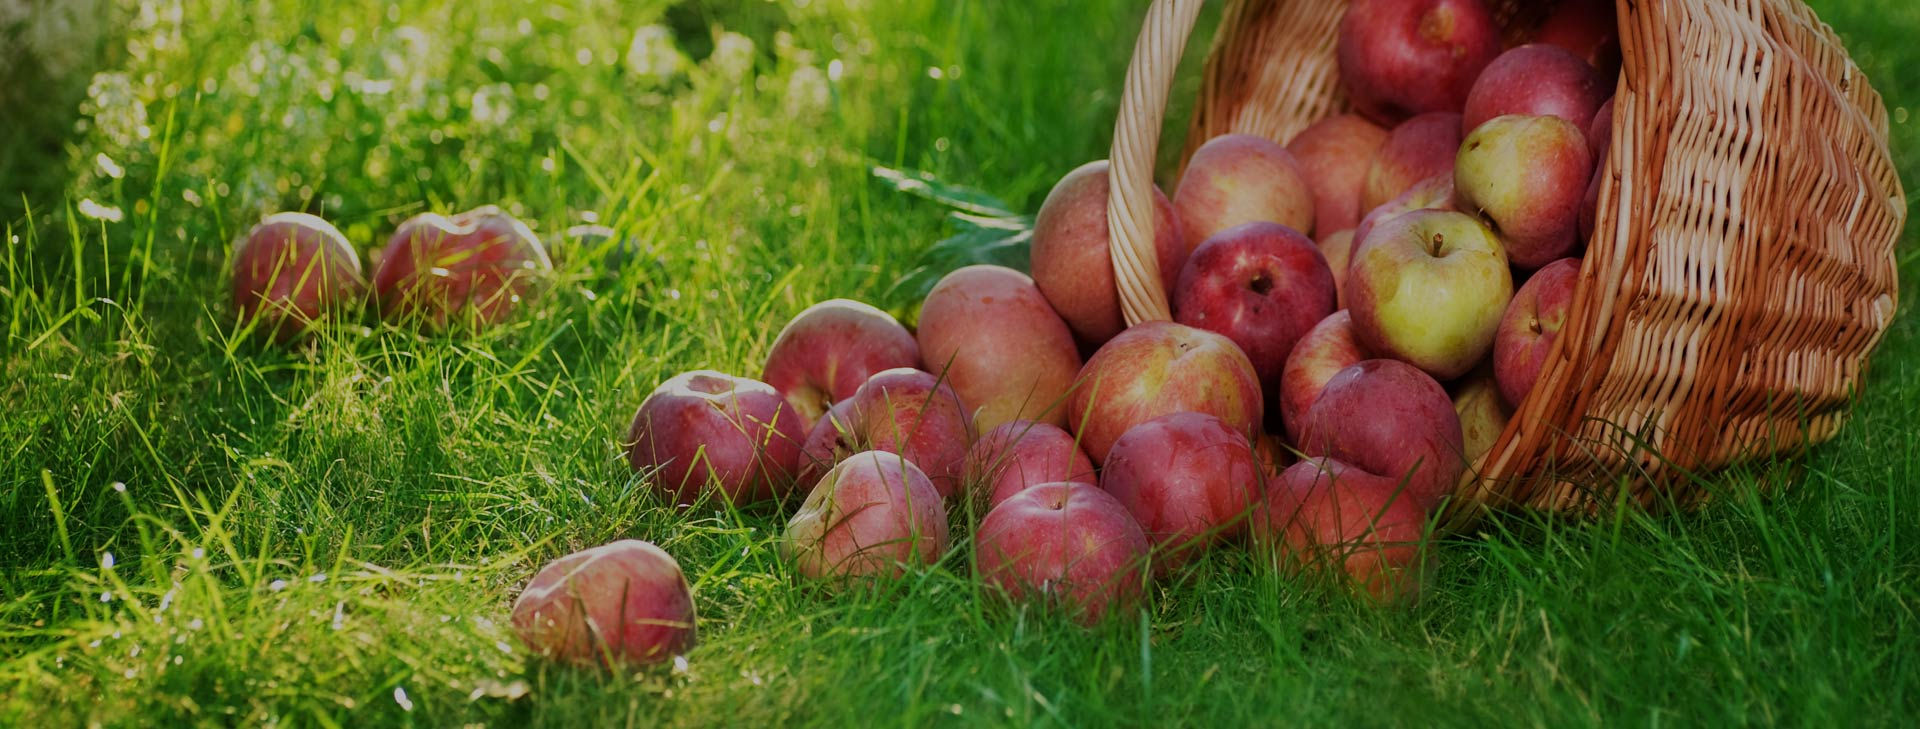 Establishing Chemical Free Gardens, Farms, Orchards and Vineyards